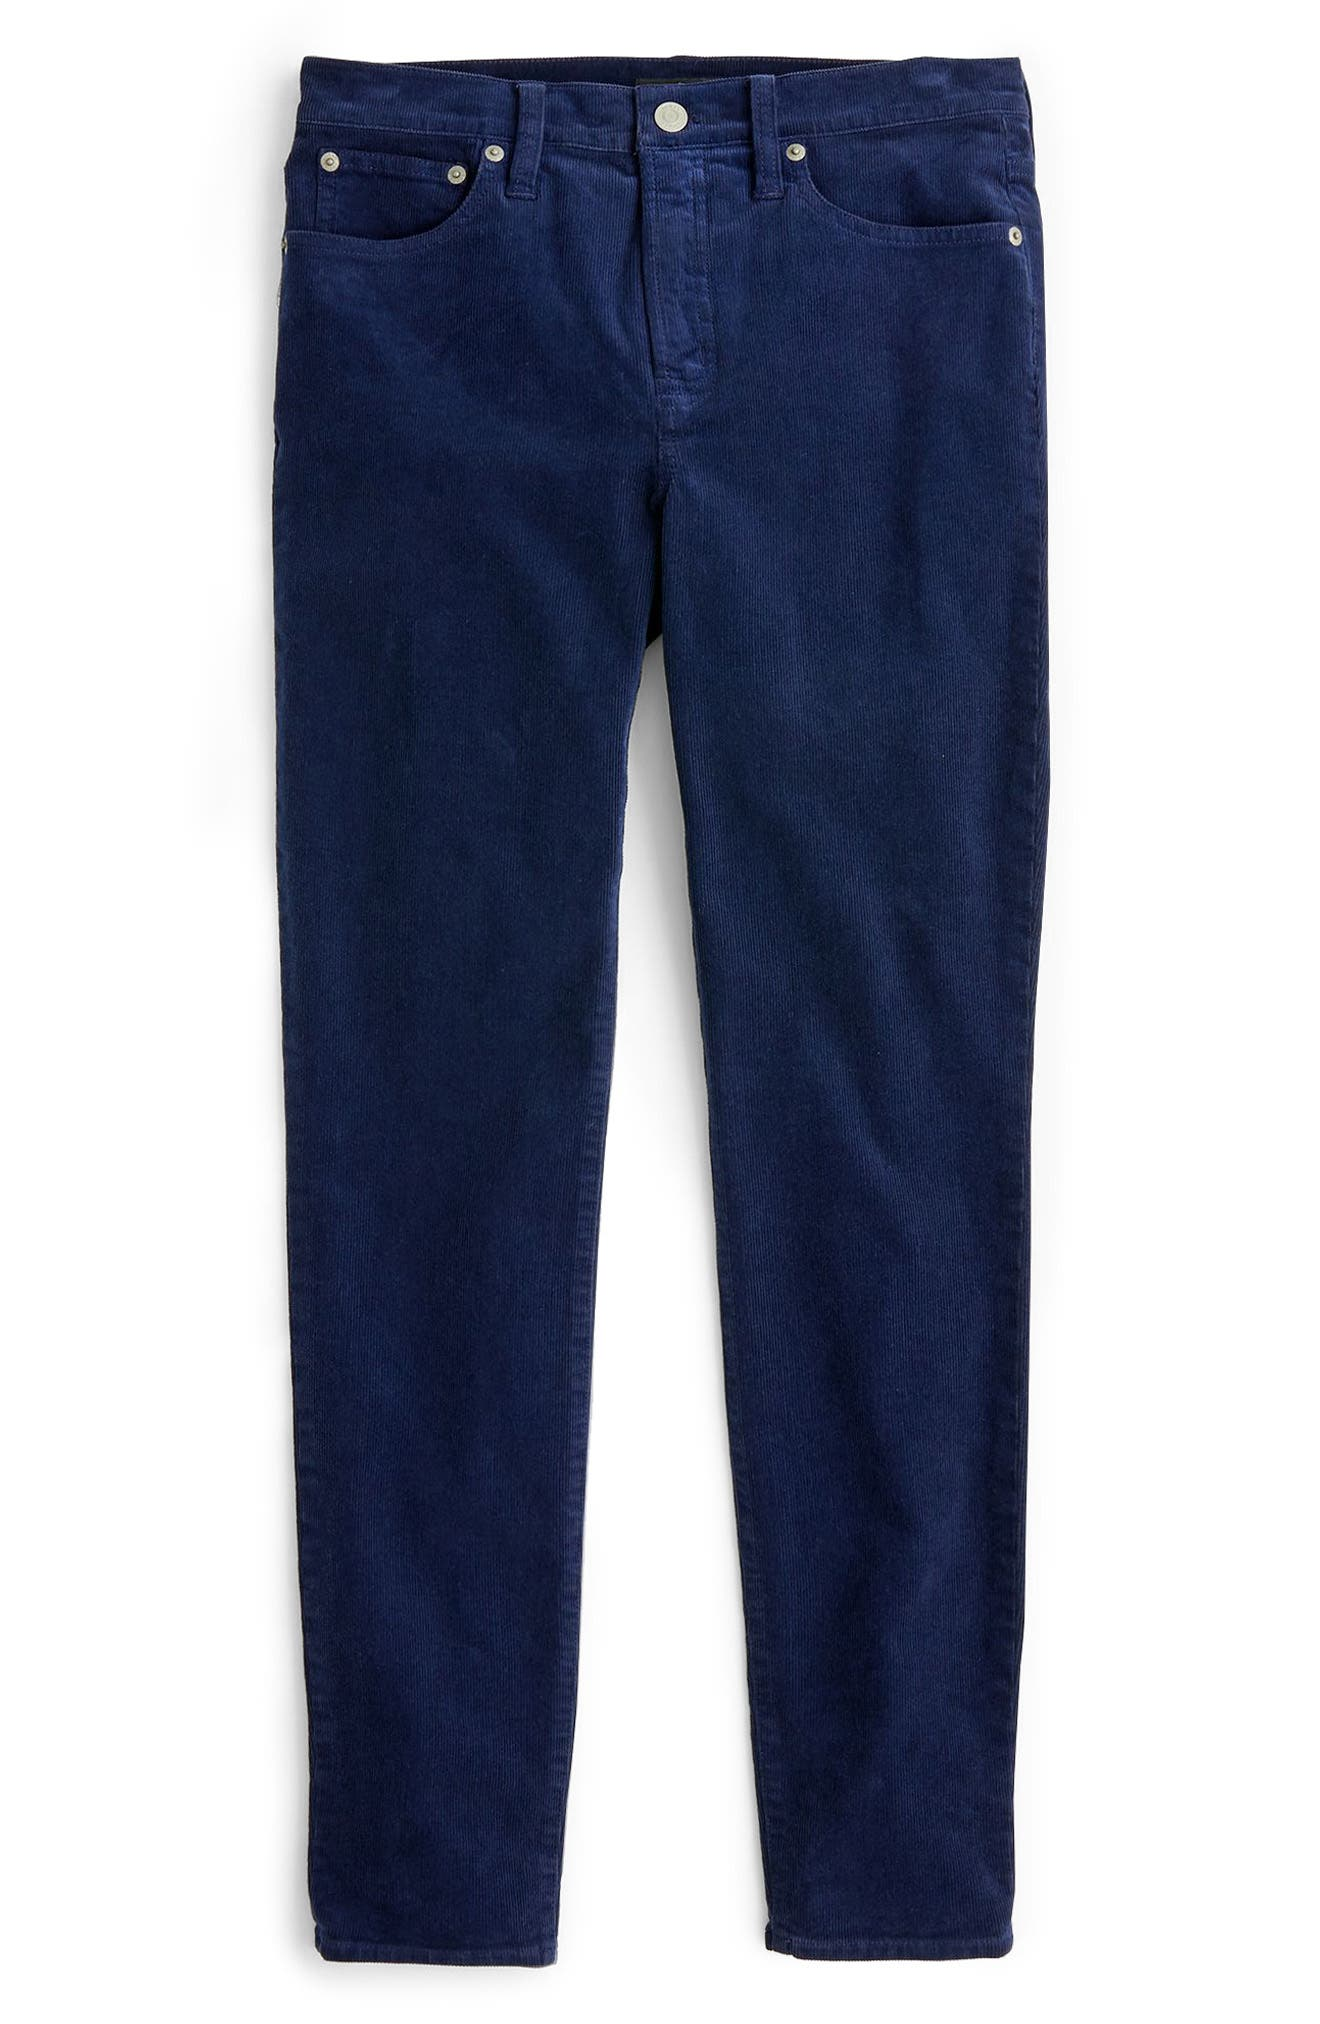 High Rise Toothpick Corduroy Jeans in Navy